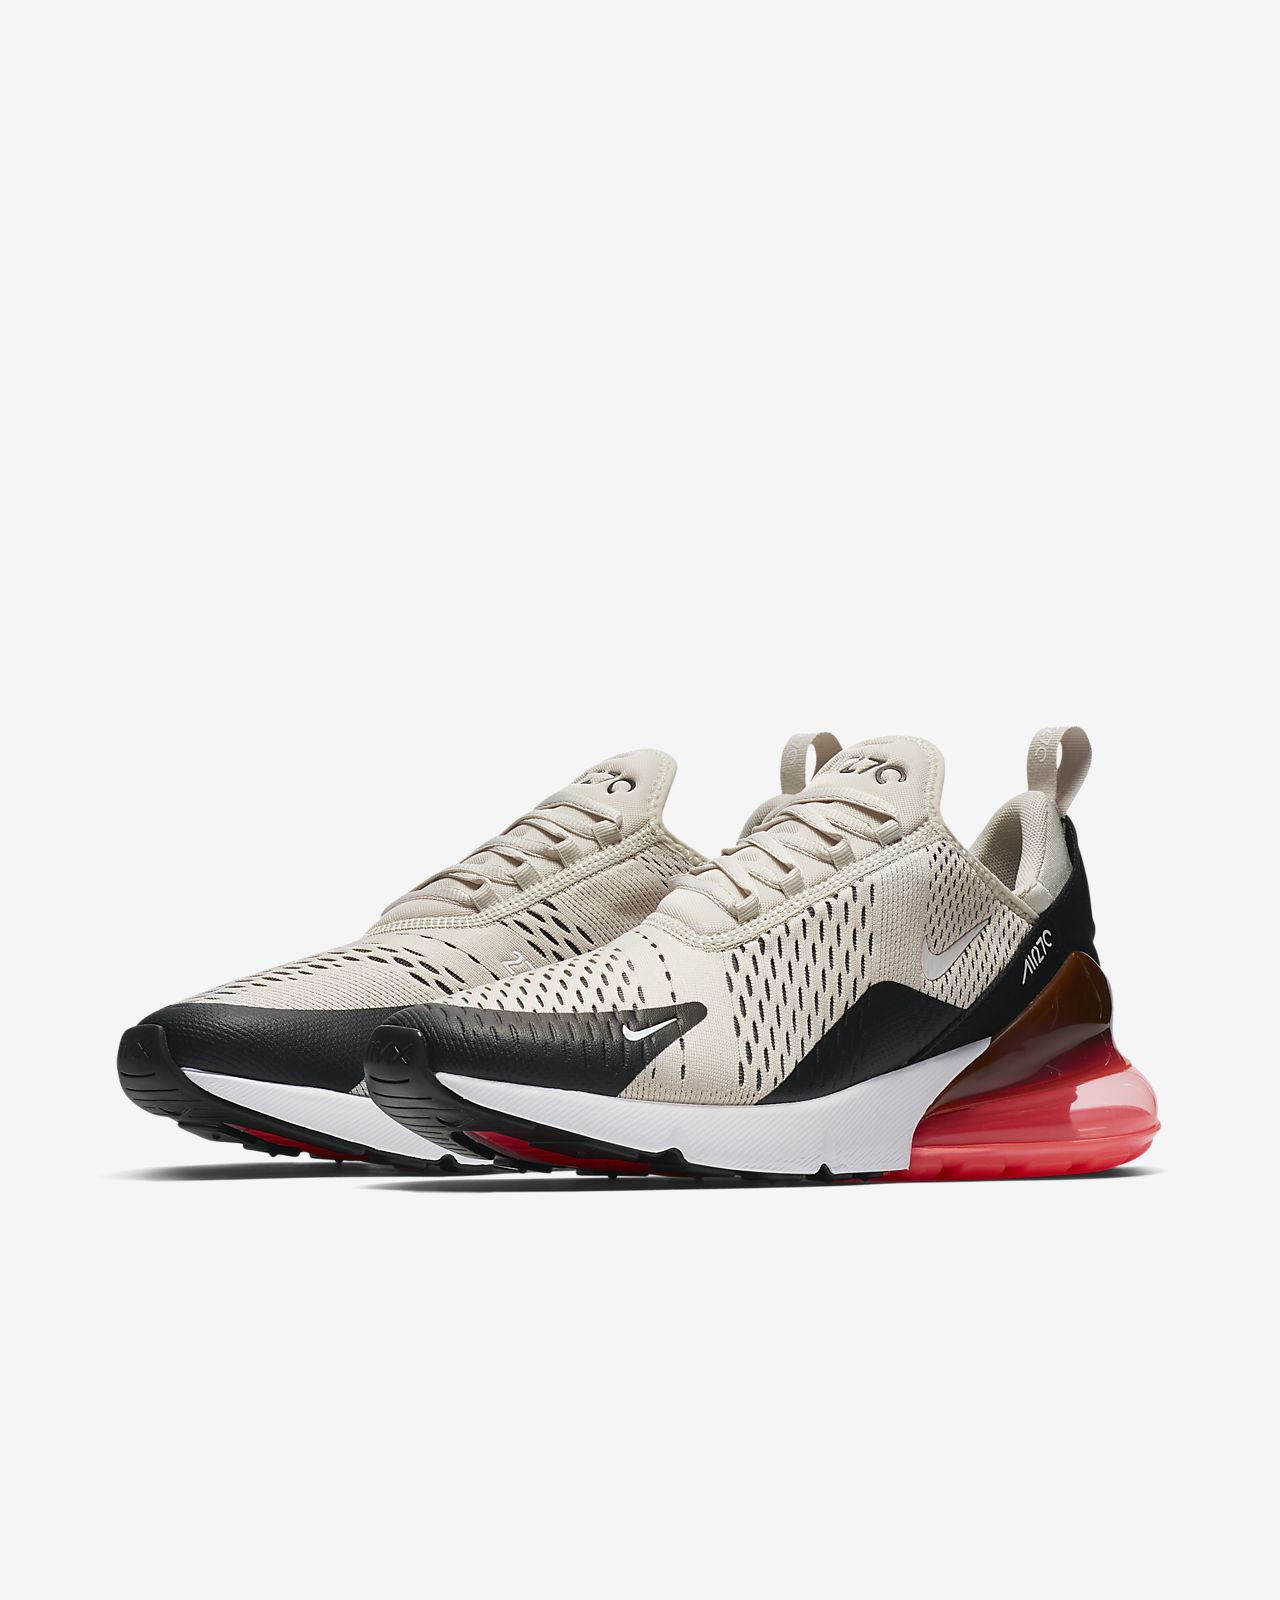 7ceaa2efb11d6 Nike Air Max 270 Men's Shoe. Nike.com GB